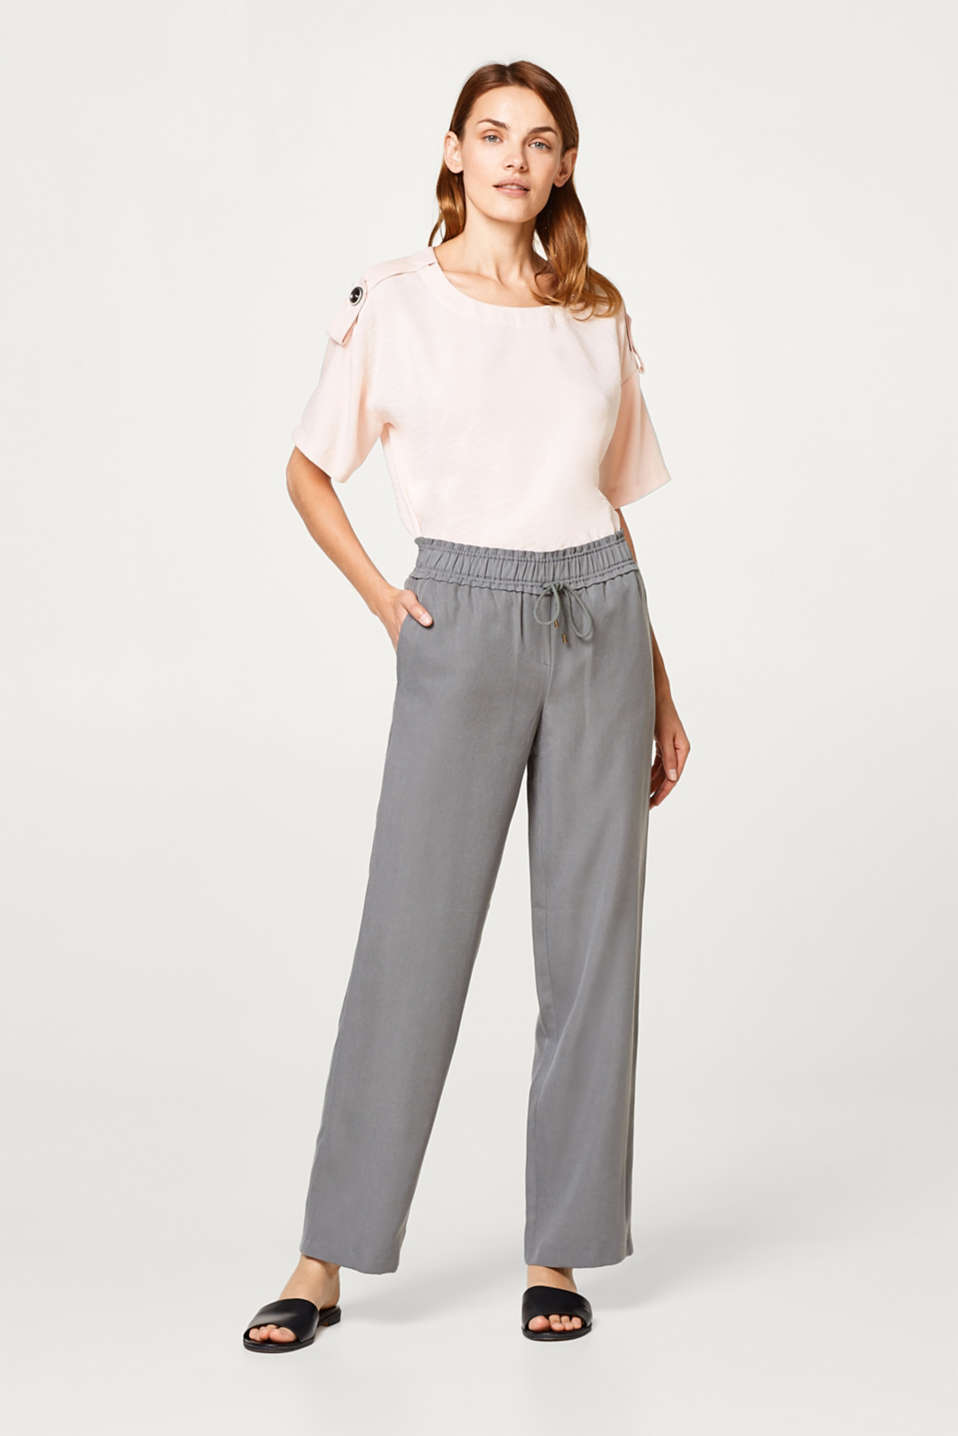 Flowing palazzo trousers with an elasticated waistband